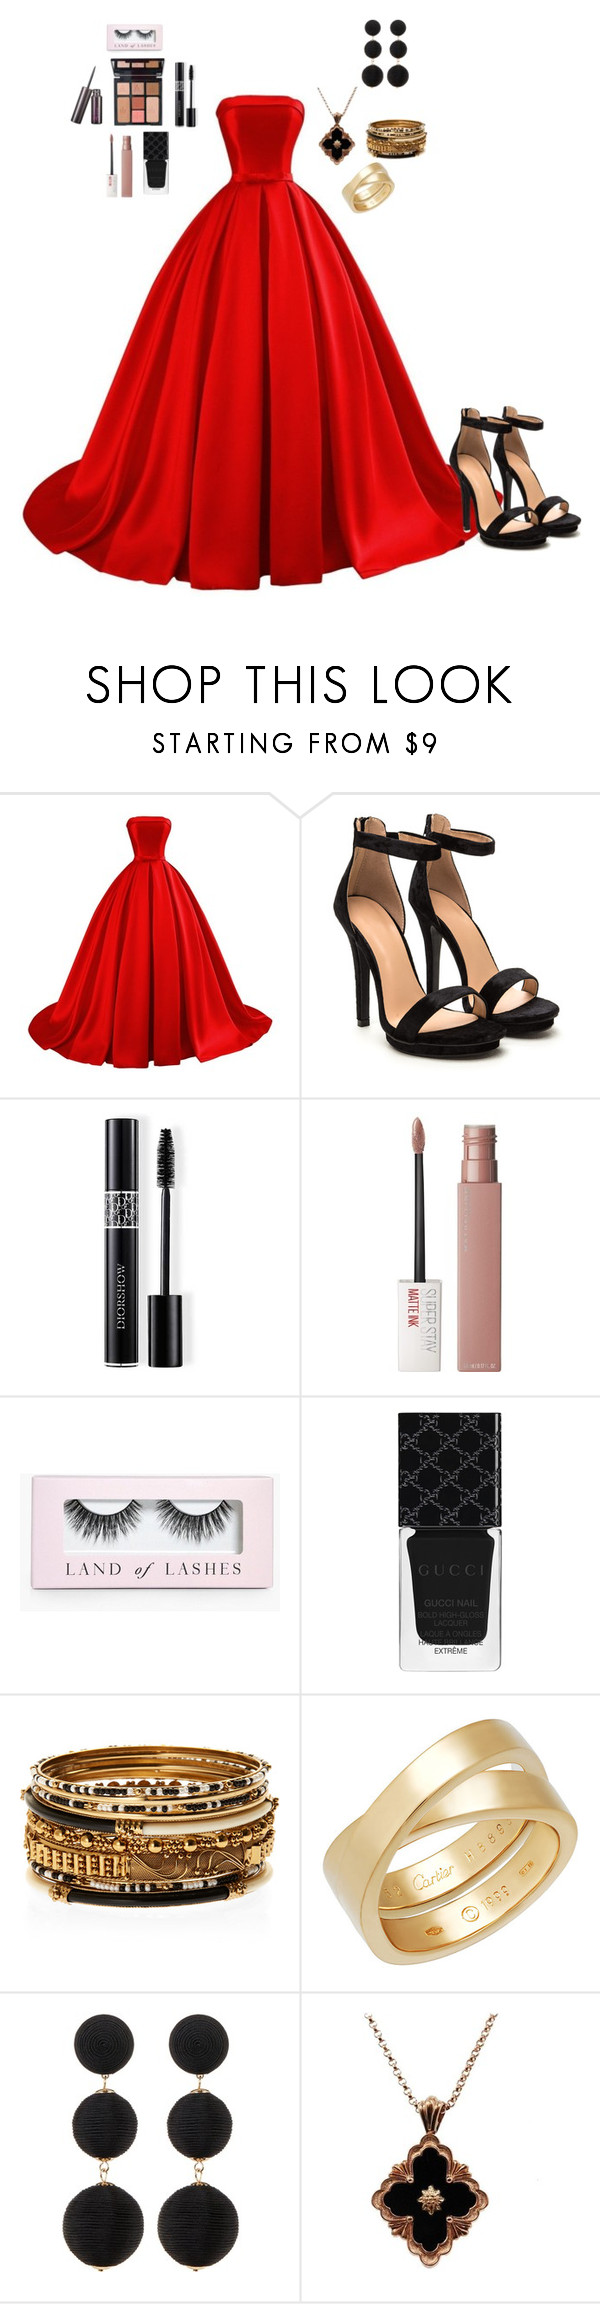 """Intensed"" by moge-tan ❤ liked on Polyvore featuring Christian Dior, Charlotte Tilbury, Maybelline, Boohoo, Gucci, Amrita Singh, Cartier, Cara Accessories and Buccellati"